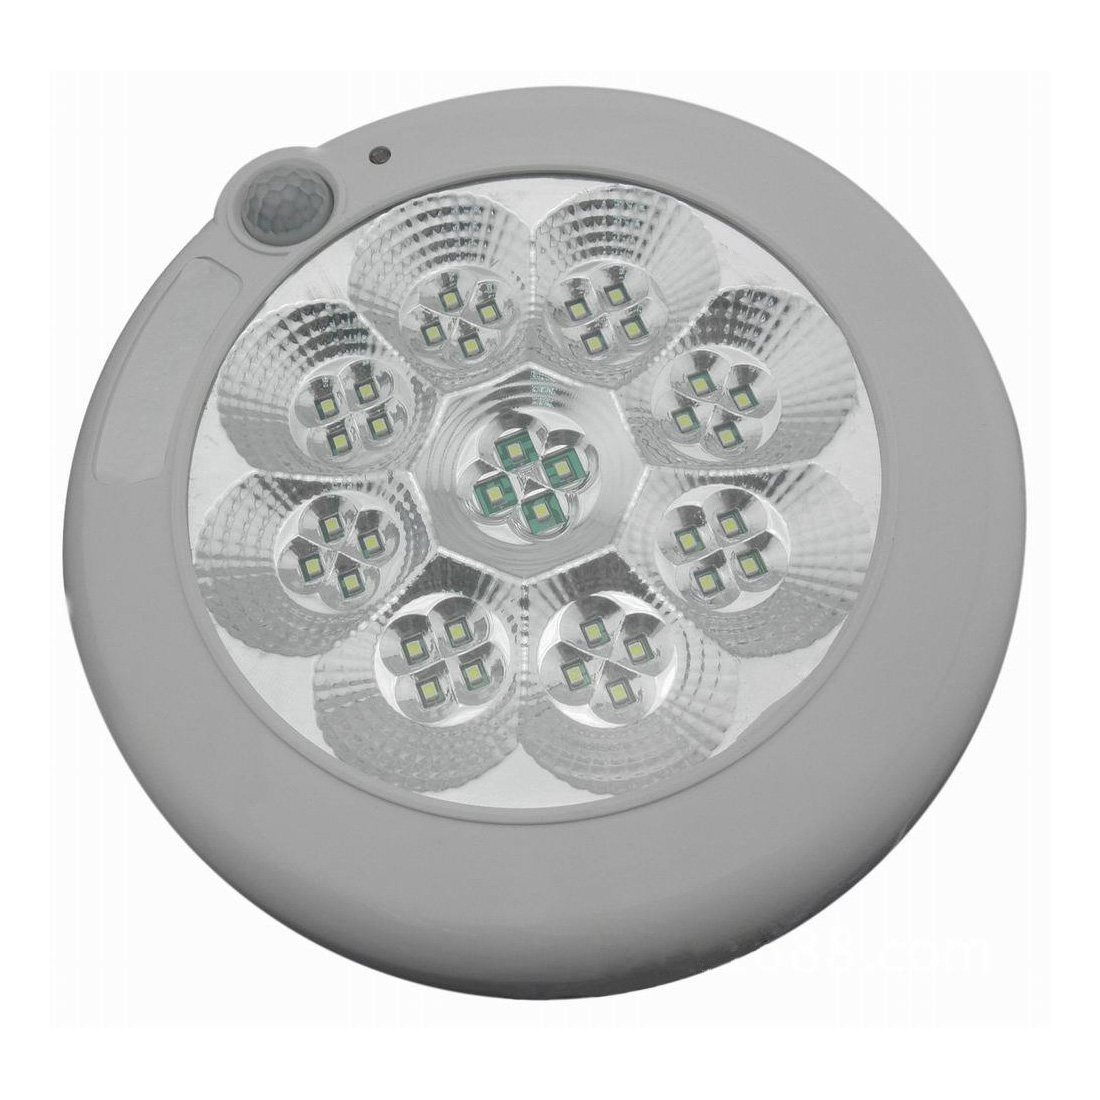 TD TAD-07LED 36LED Night Light for Hallway,Bedroom,Wardrobe,Kitchen Automatic Induction  ...